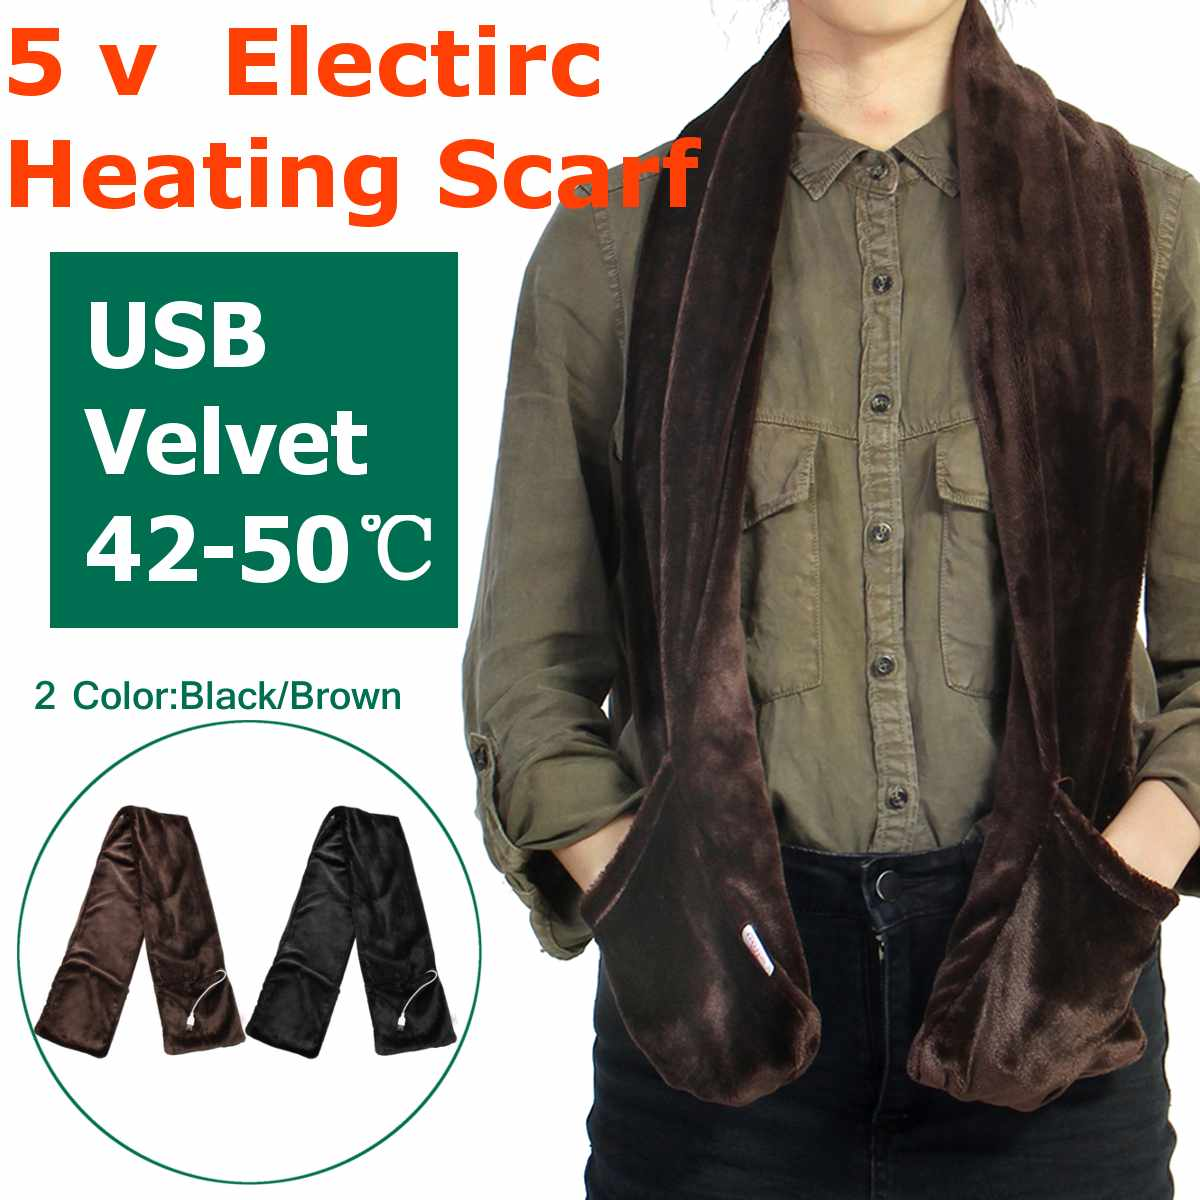 Rechargeable USB Powered Soft Heated Scarf Electric Shawl Winter Warming Neck Collar Portable Ourdoor Skin Warmer 22*150cm